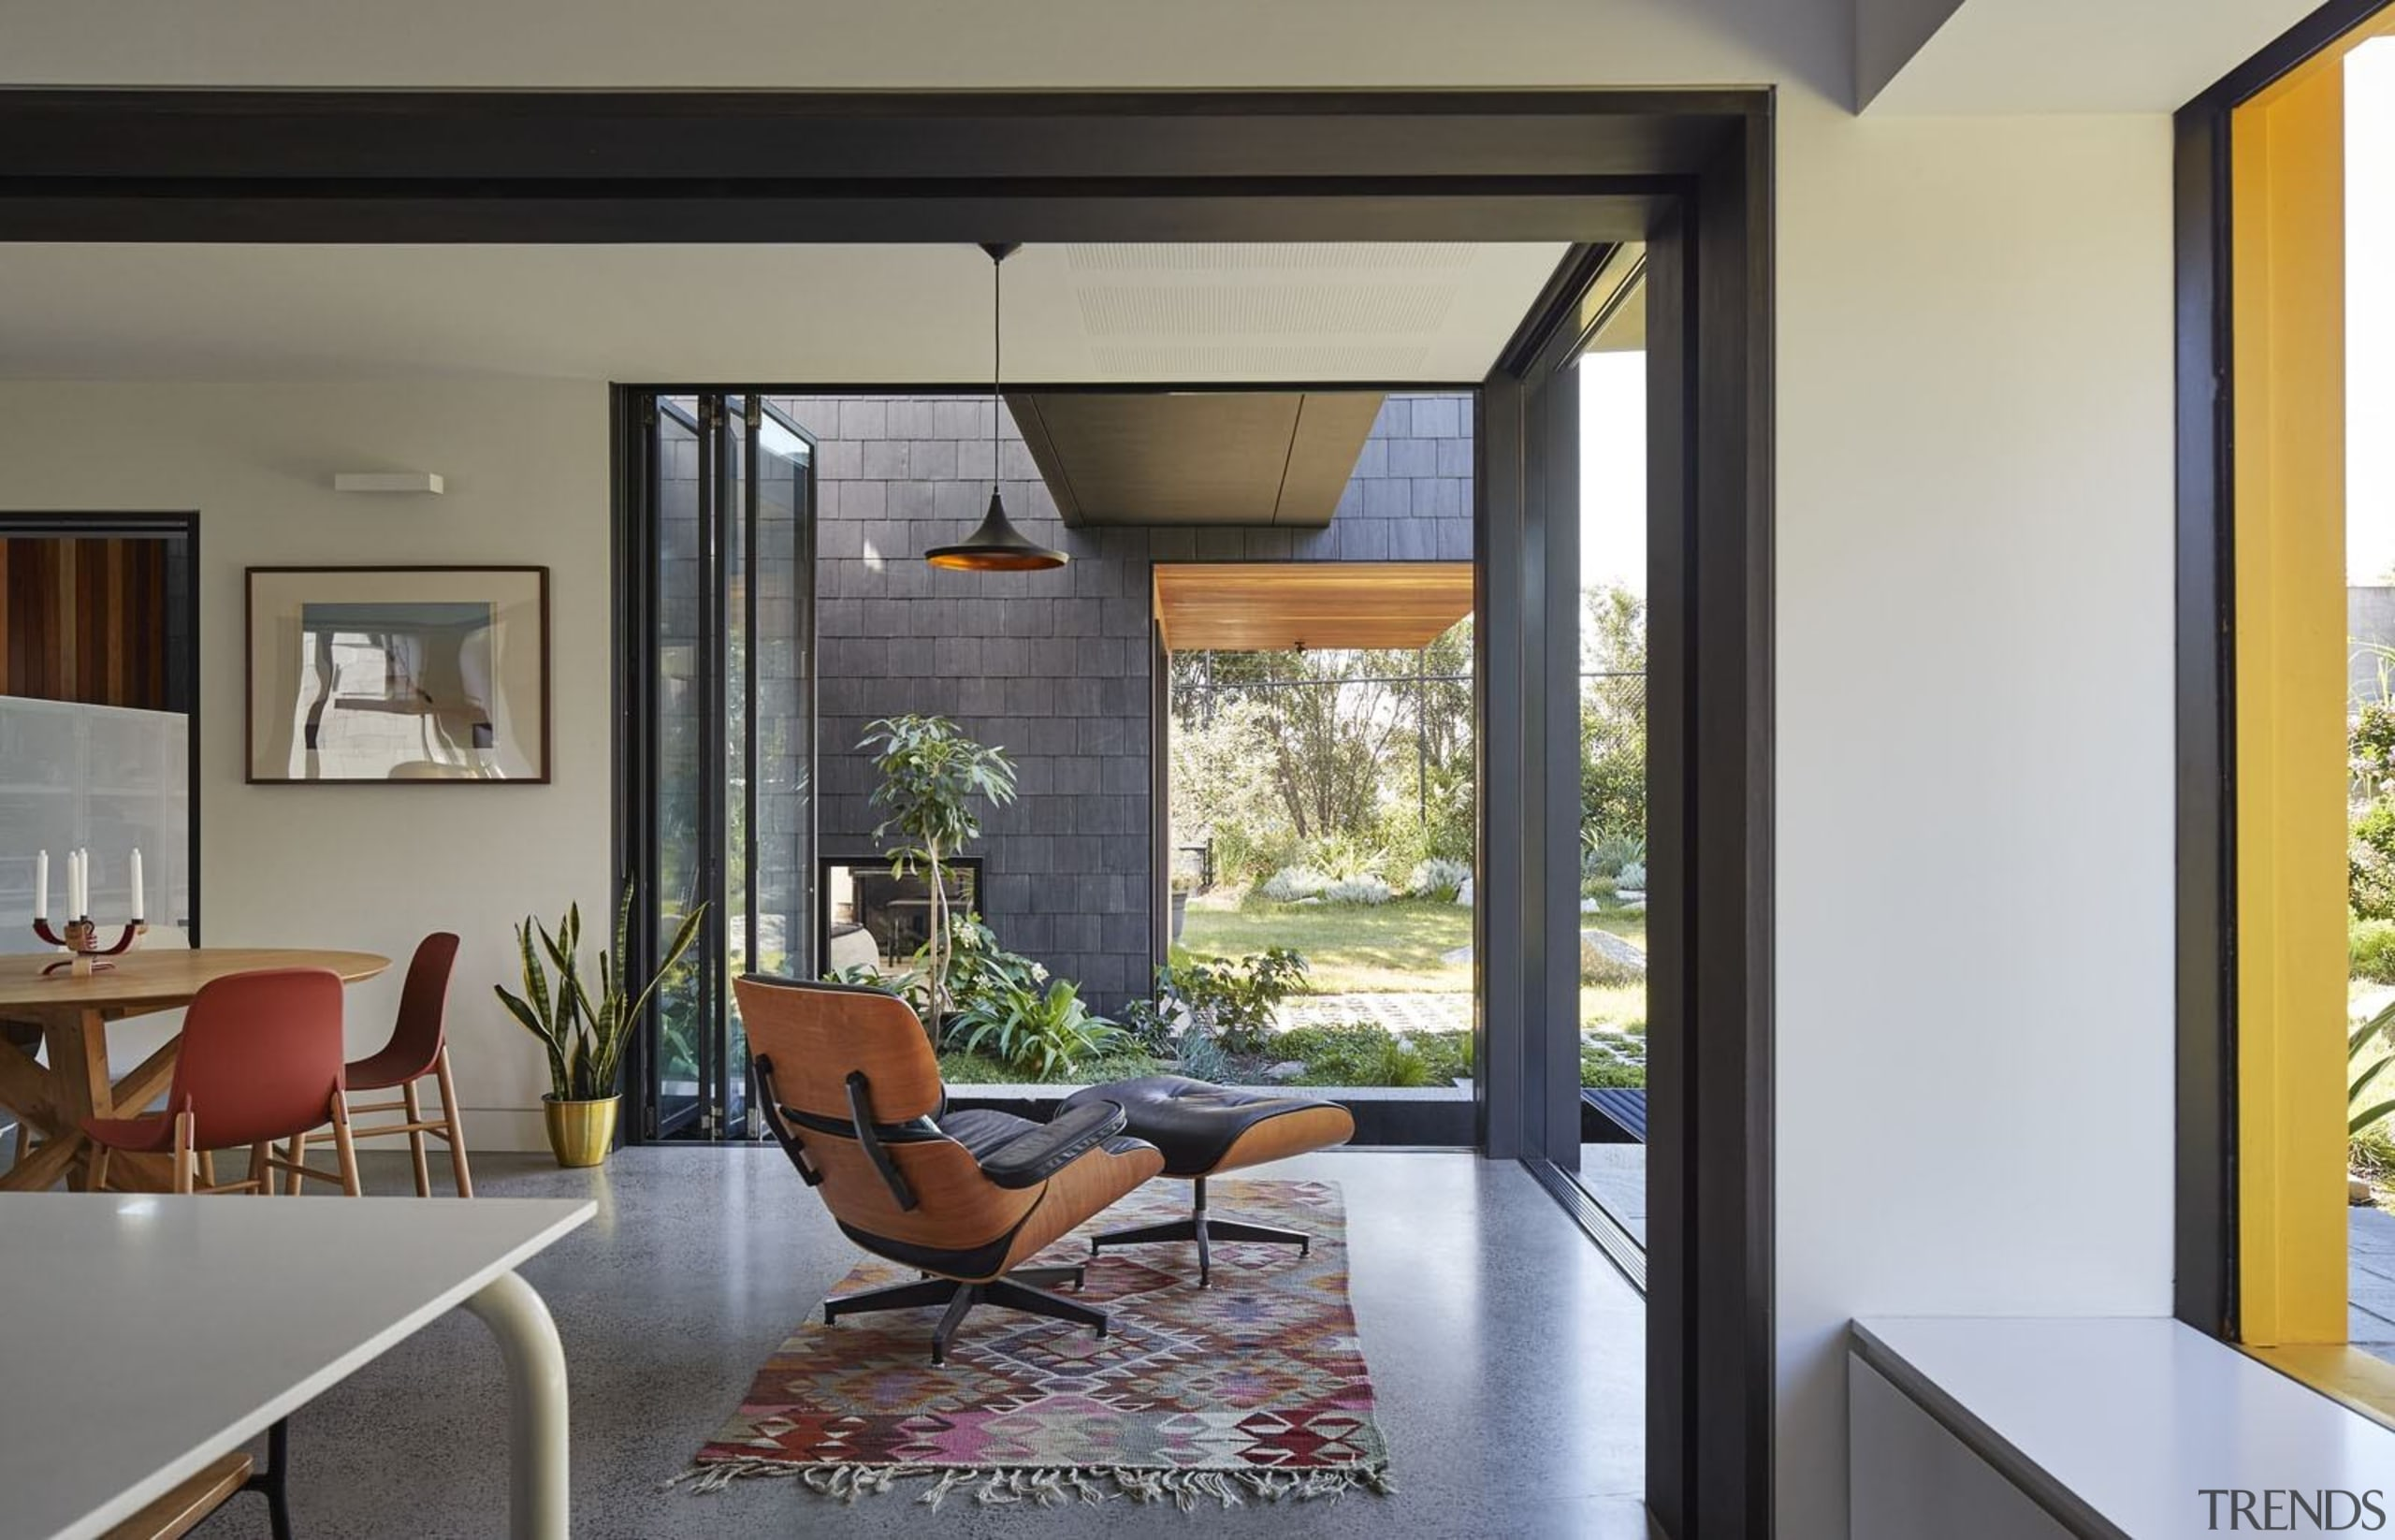 Architect: Austin Maynard ArchitectsPhotography by Peter Bennetts architecture, door, house, interior design, living room, property, real estate, window, gray